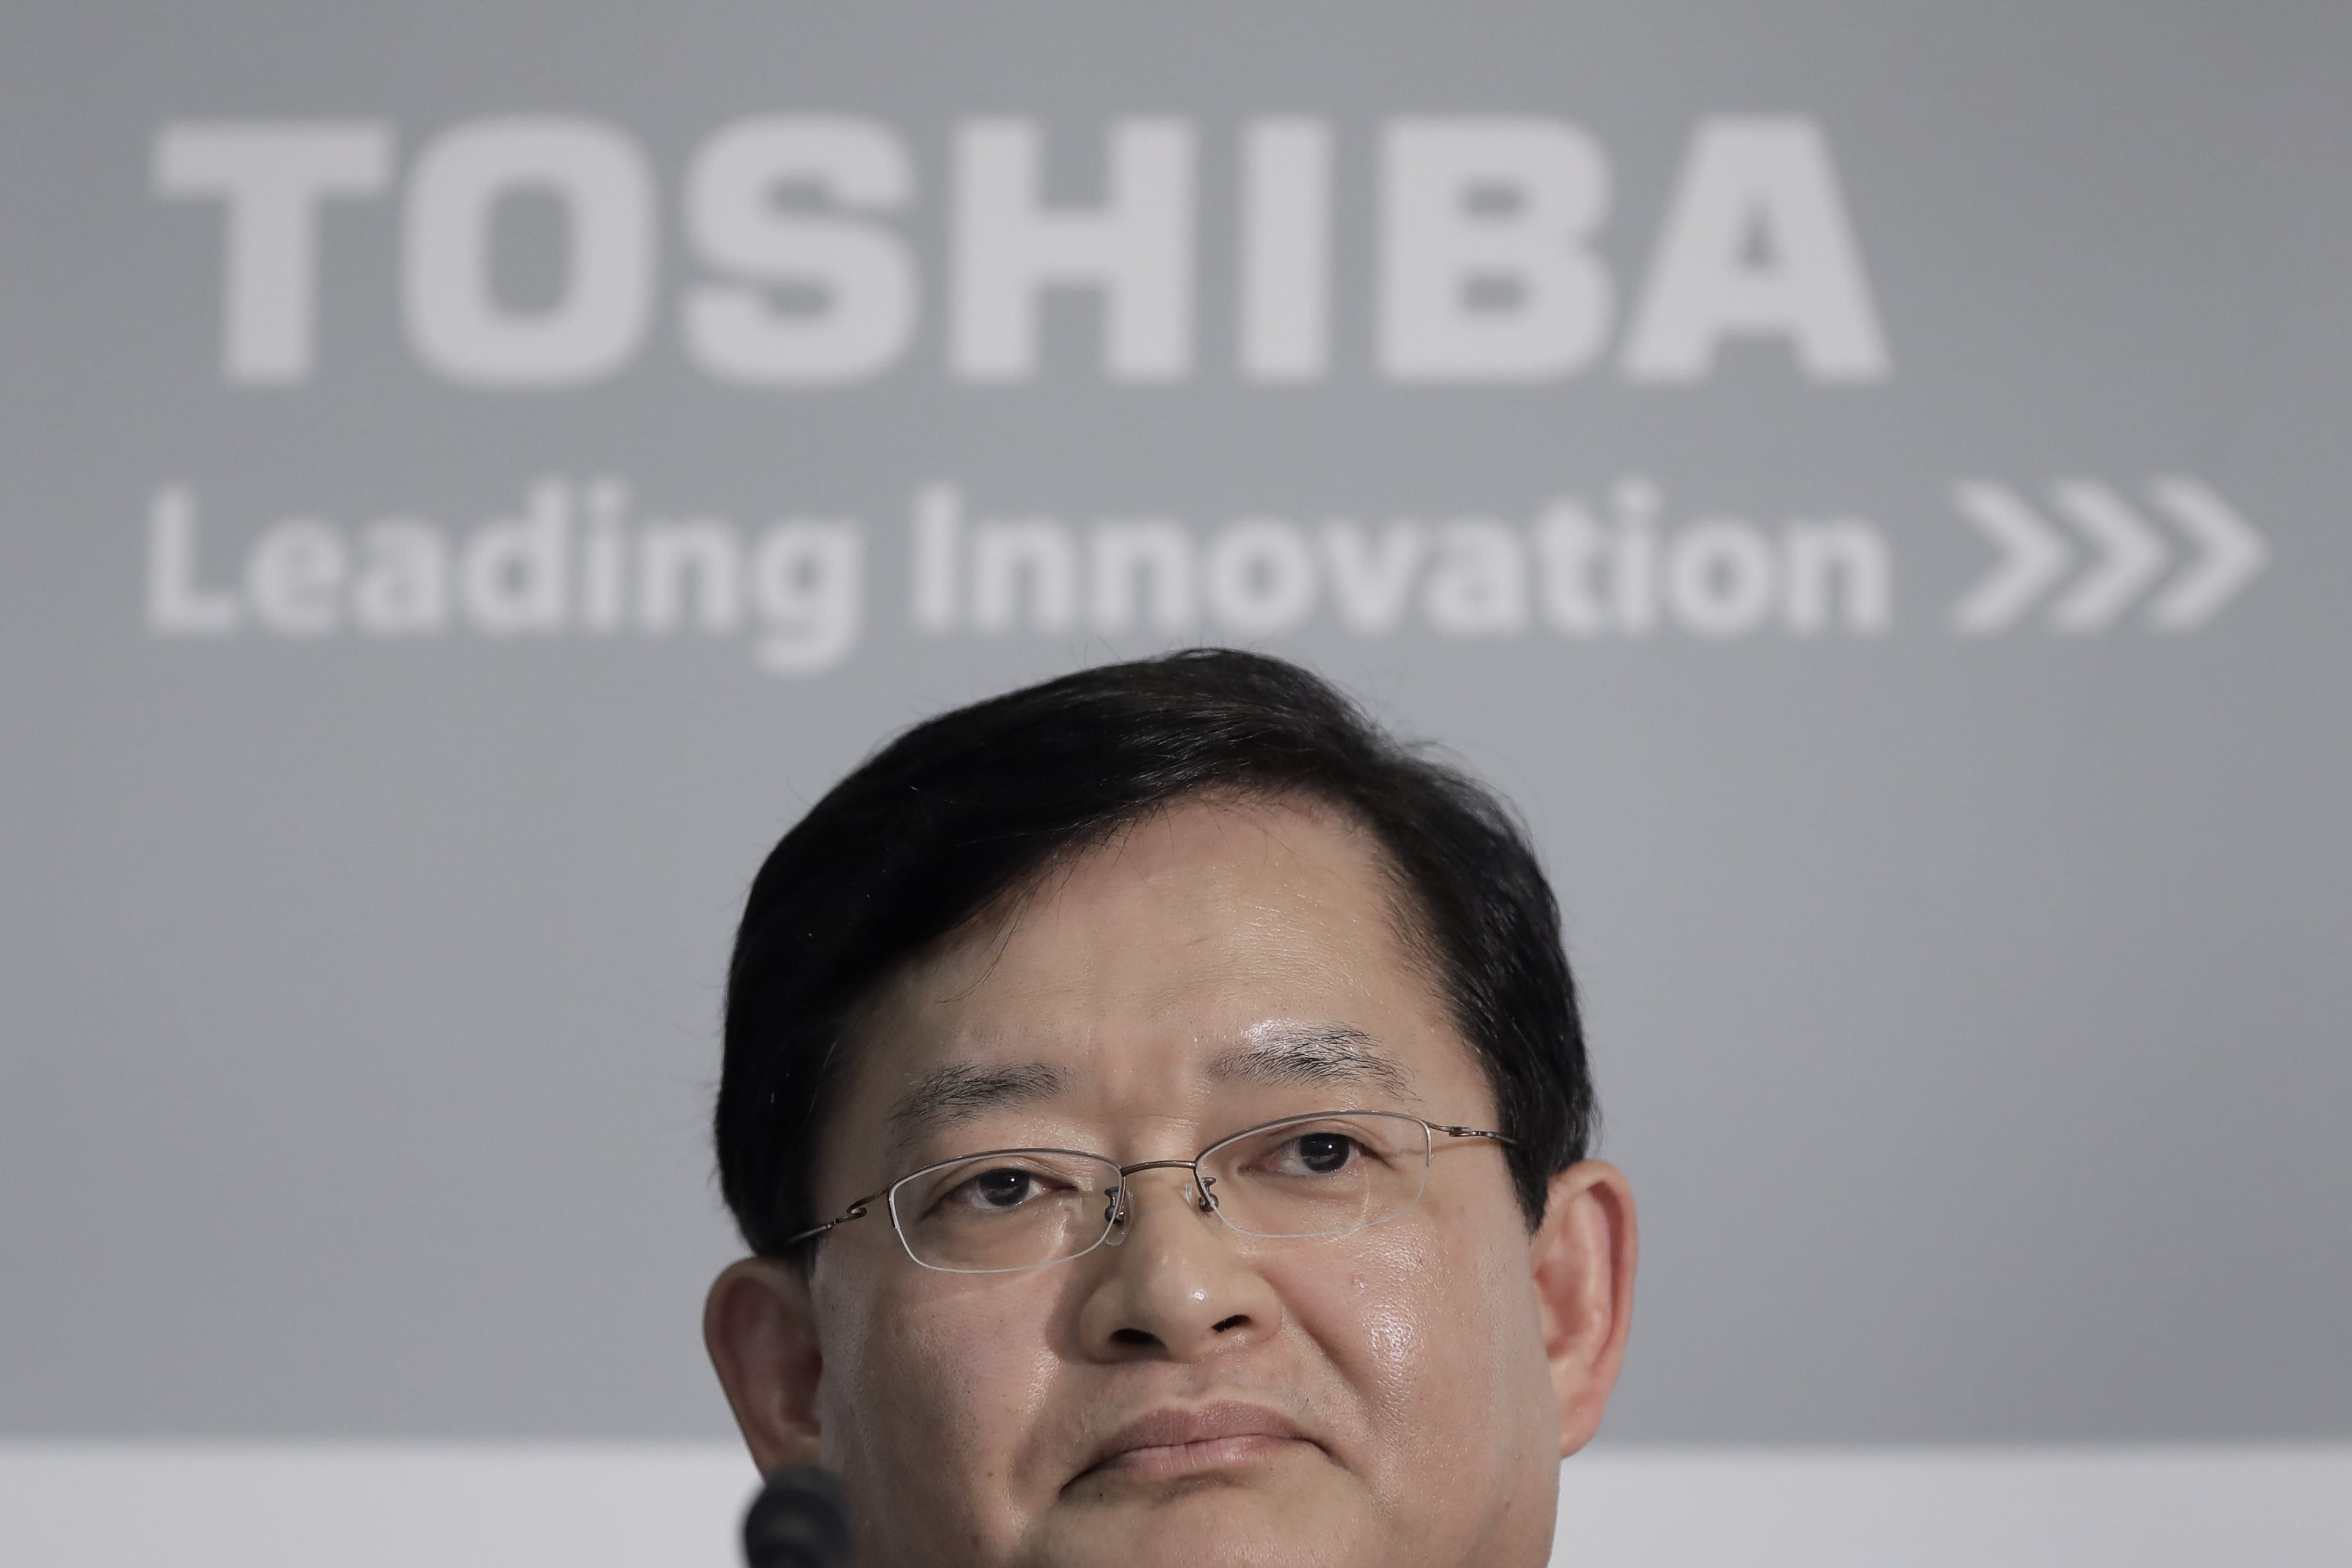 Controversial Toshiba CEO steps down, shares jump on bidding war expectations